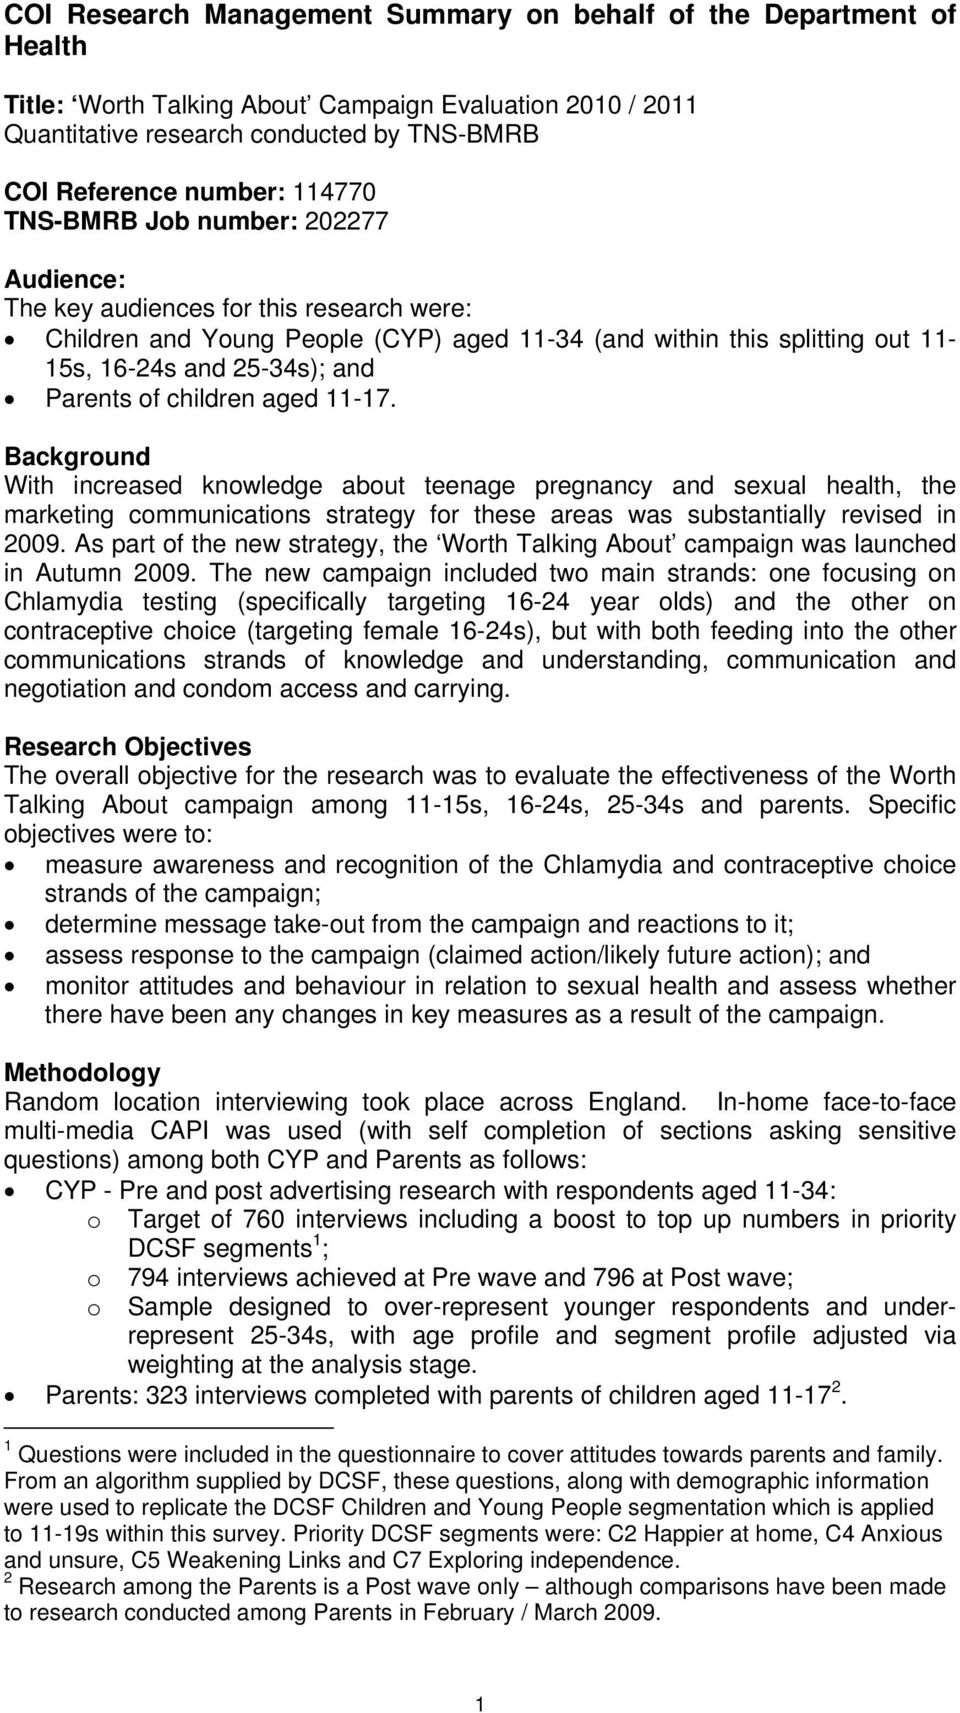 Parents of children aged 11-17. Background With increased knowledge about teenage pregnancy and sexual health, the marketing communications strategy for these areas was substantially revised in 2009.